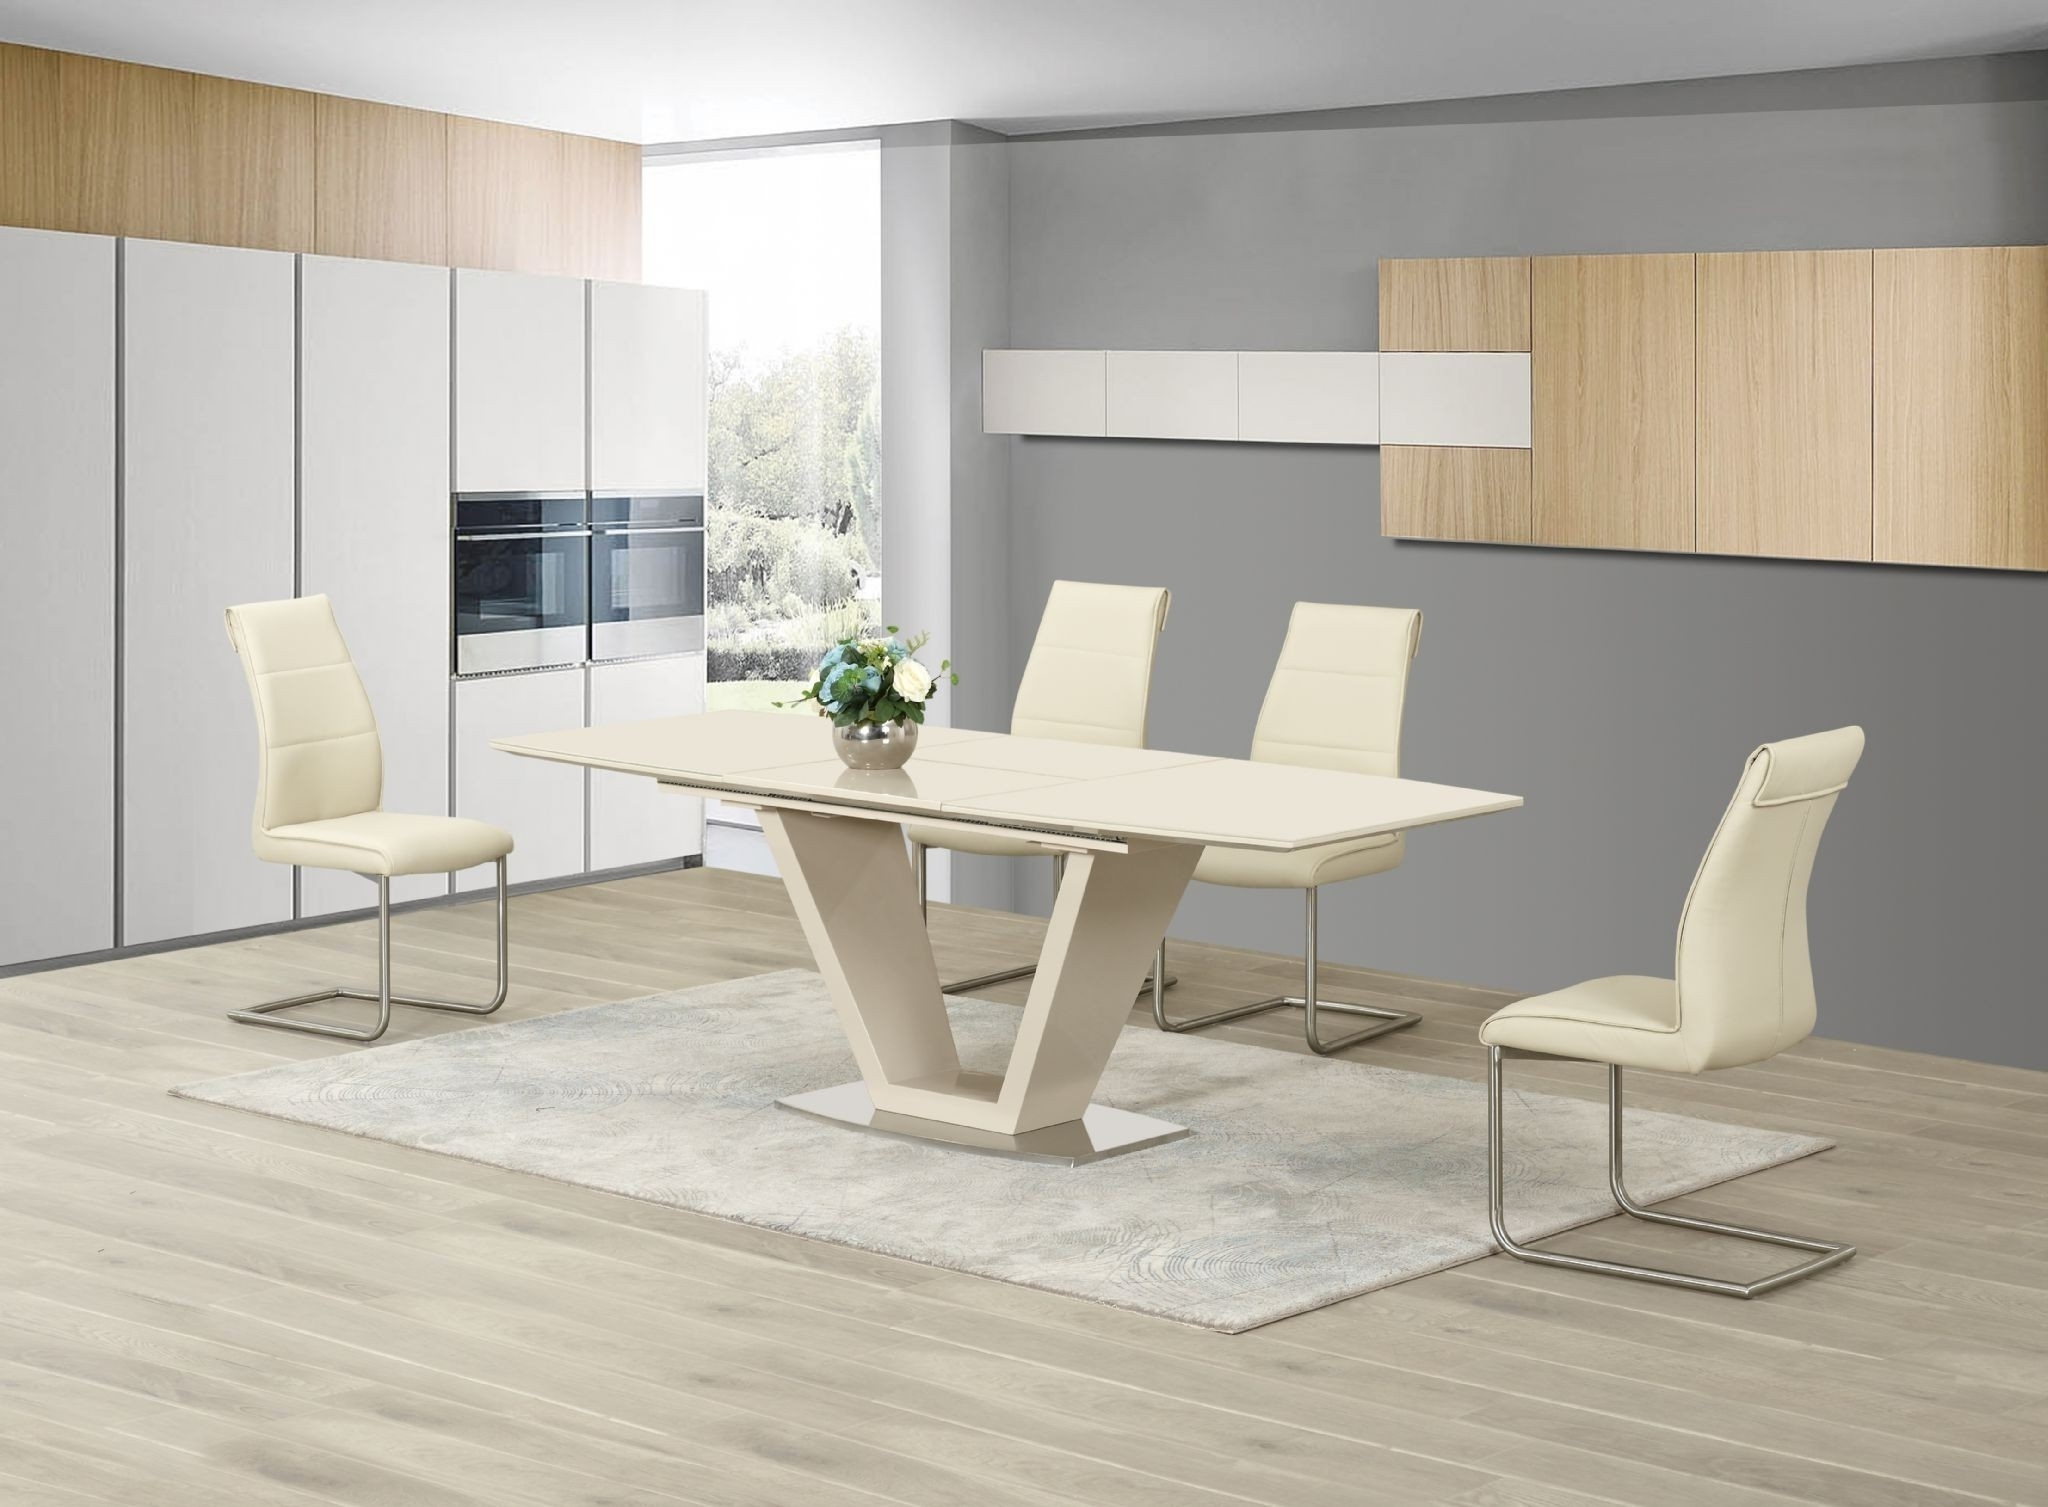 High Gloss Round Dining Tables Intended For Well Known White High Gloss Extending Dining Table Beautiful White Extending (View 10 of 25)